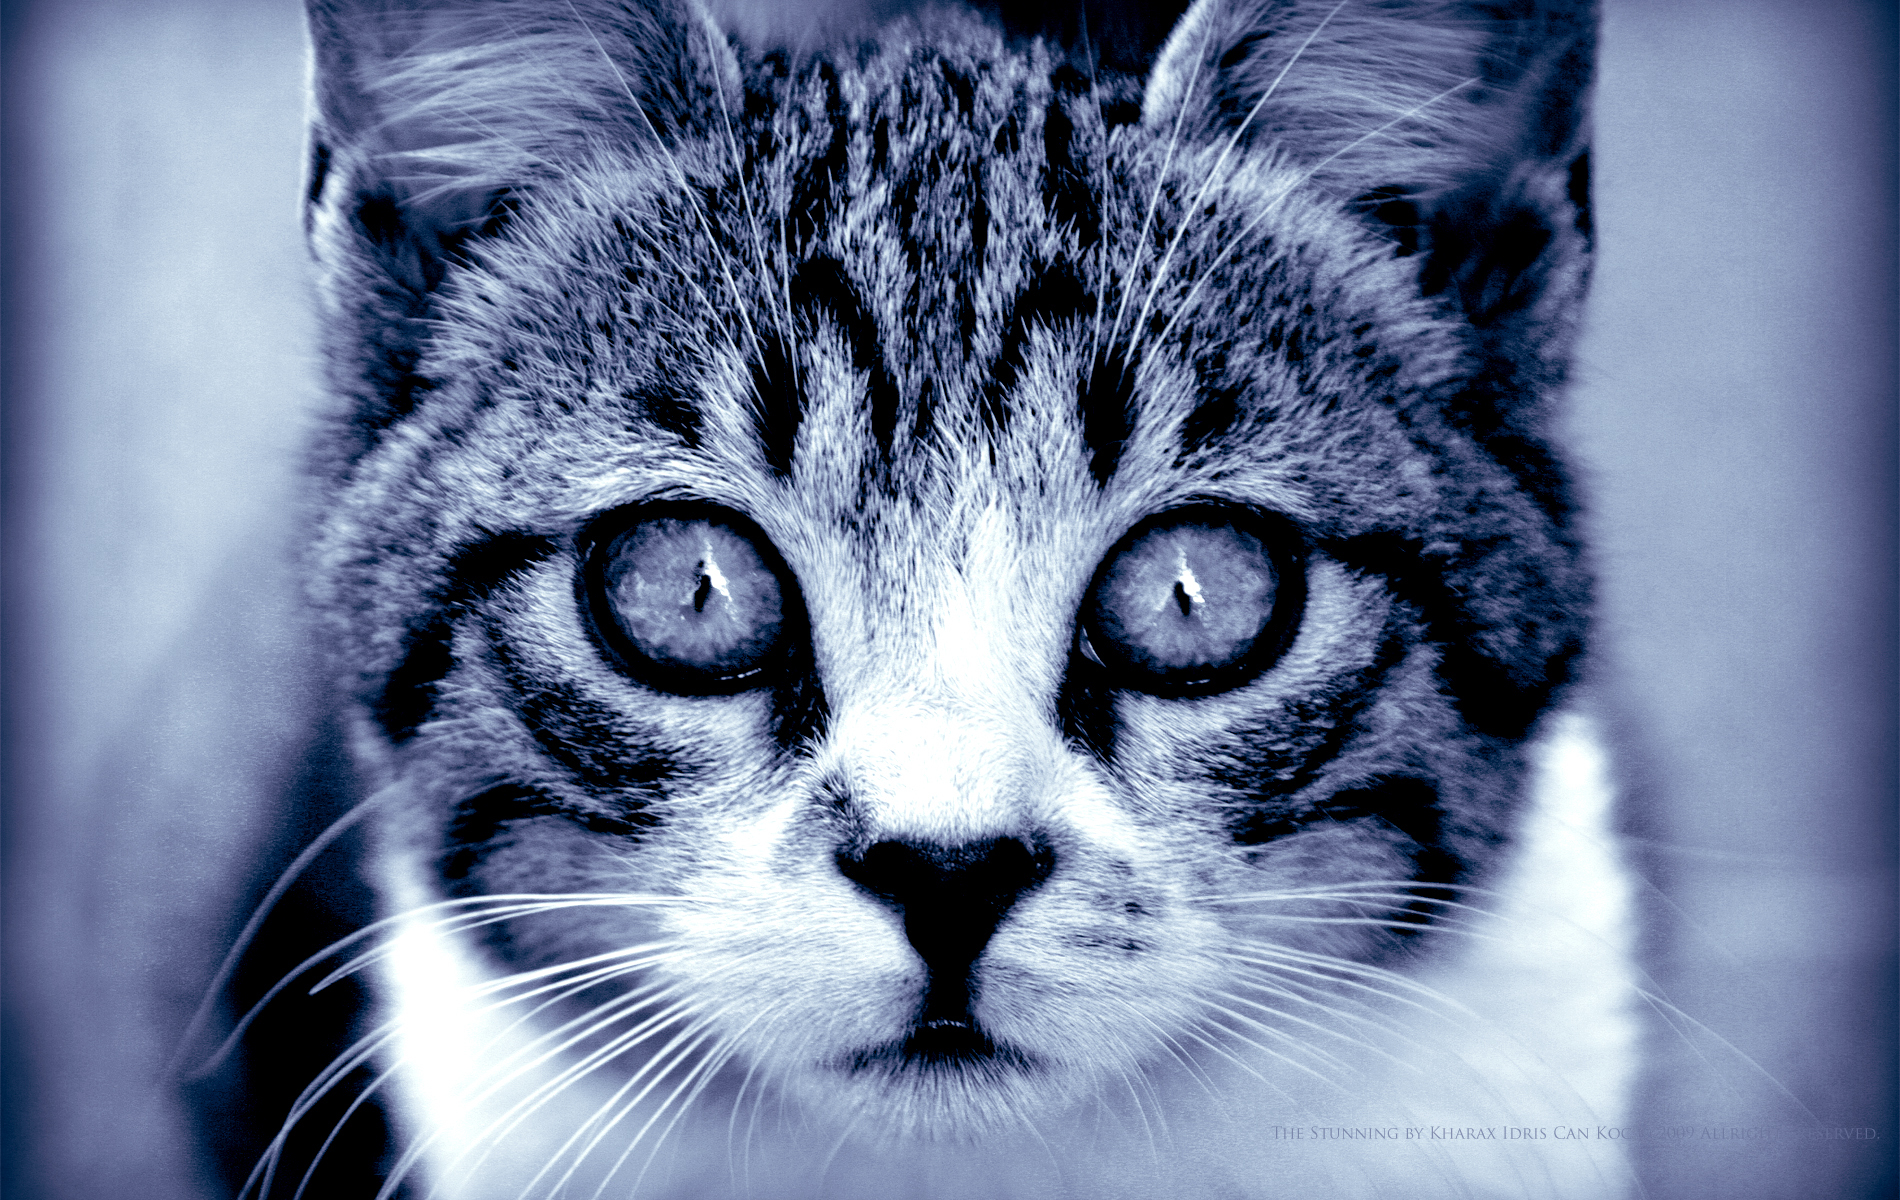 20669 download wallpaper Animals, Cats screensavers and pictures for free